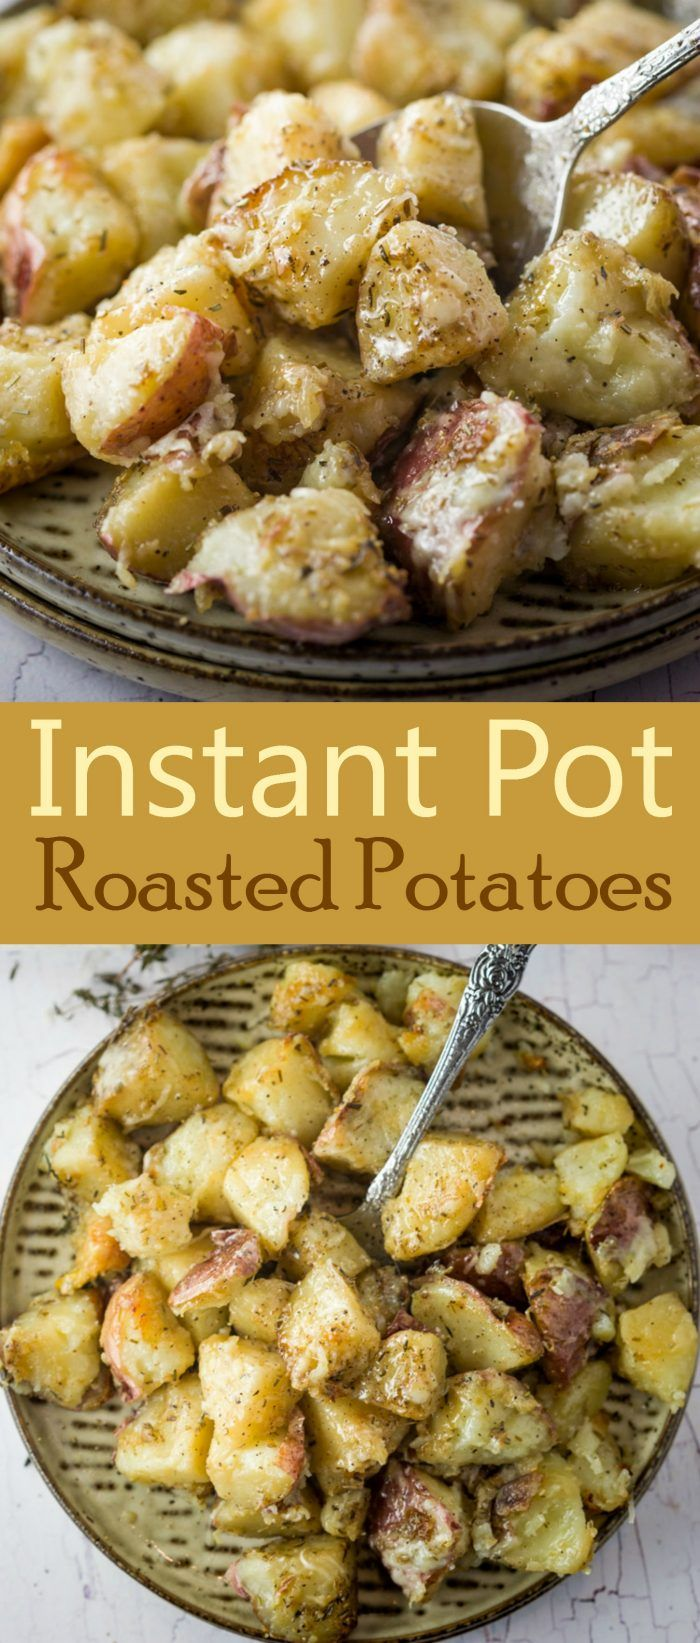 These instant pot roasted potatoes are crisp on the outside and soft and pillowy on the inside. They're perfectly seasoned with rosemary, thyme, garlic, and an optional sprinkling of cheese and take a max of 30 minutes to cook!   The Cozy Cook   #Potatoes #InstantPot #SideDishes #Sides #RoastedPotatoes #Potato